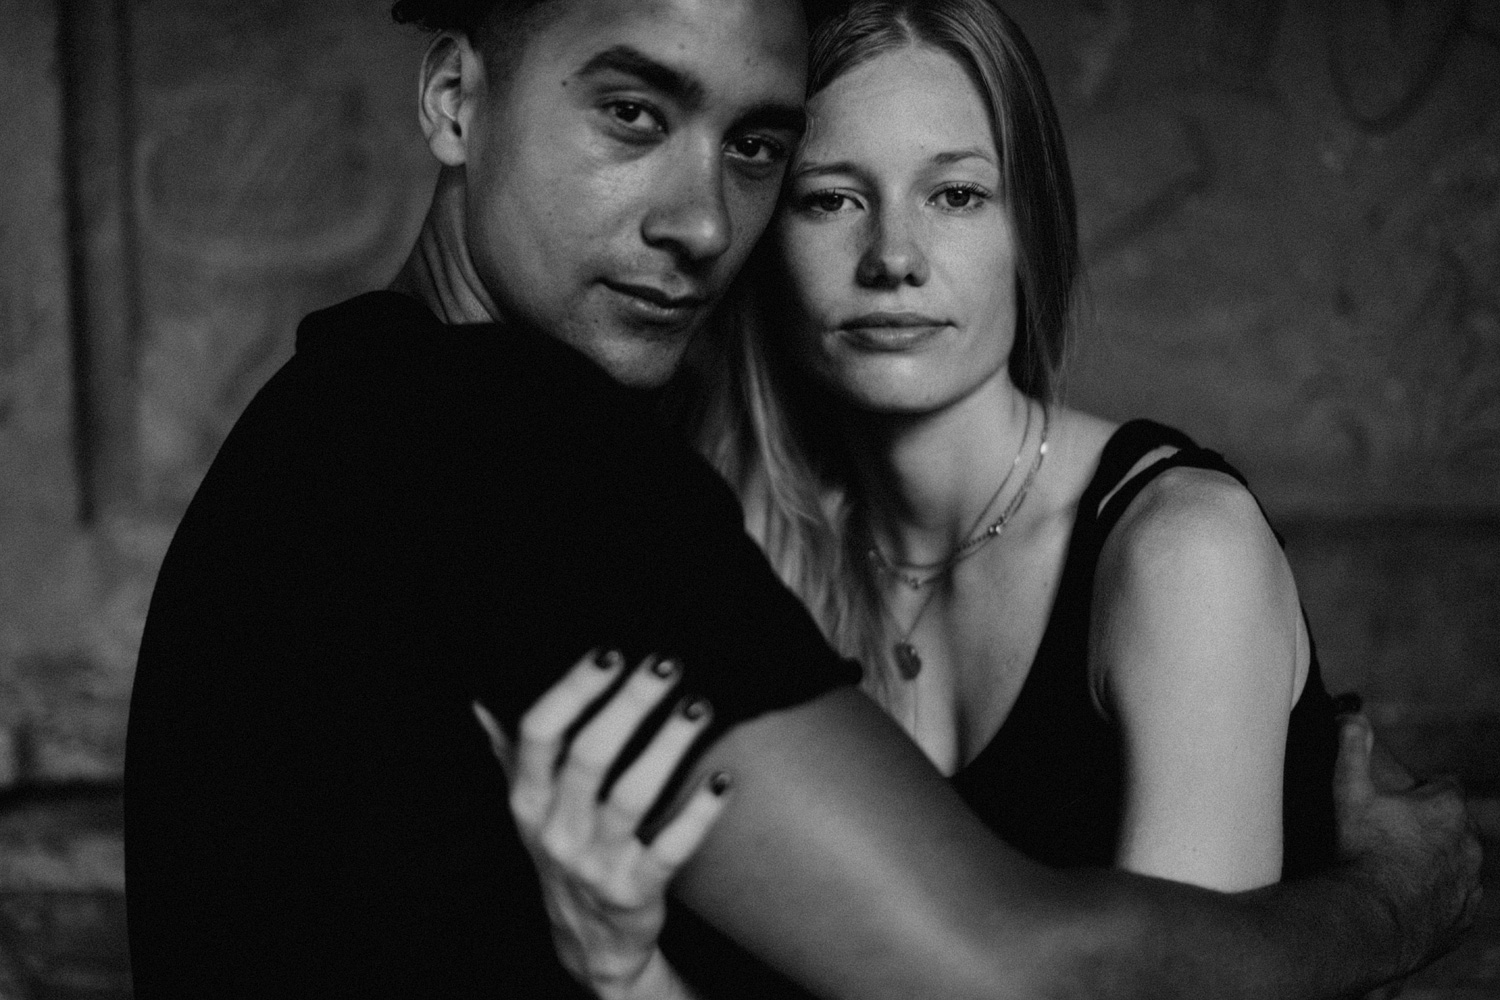 Close up portrait with couple facing the camera